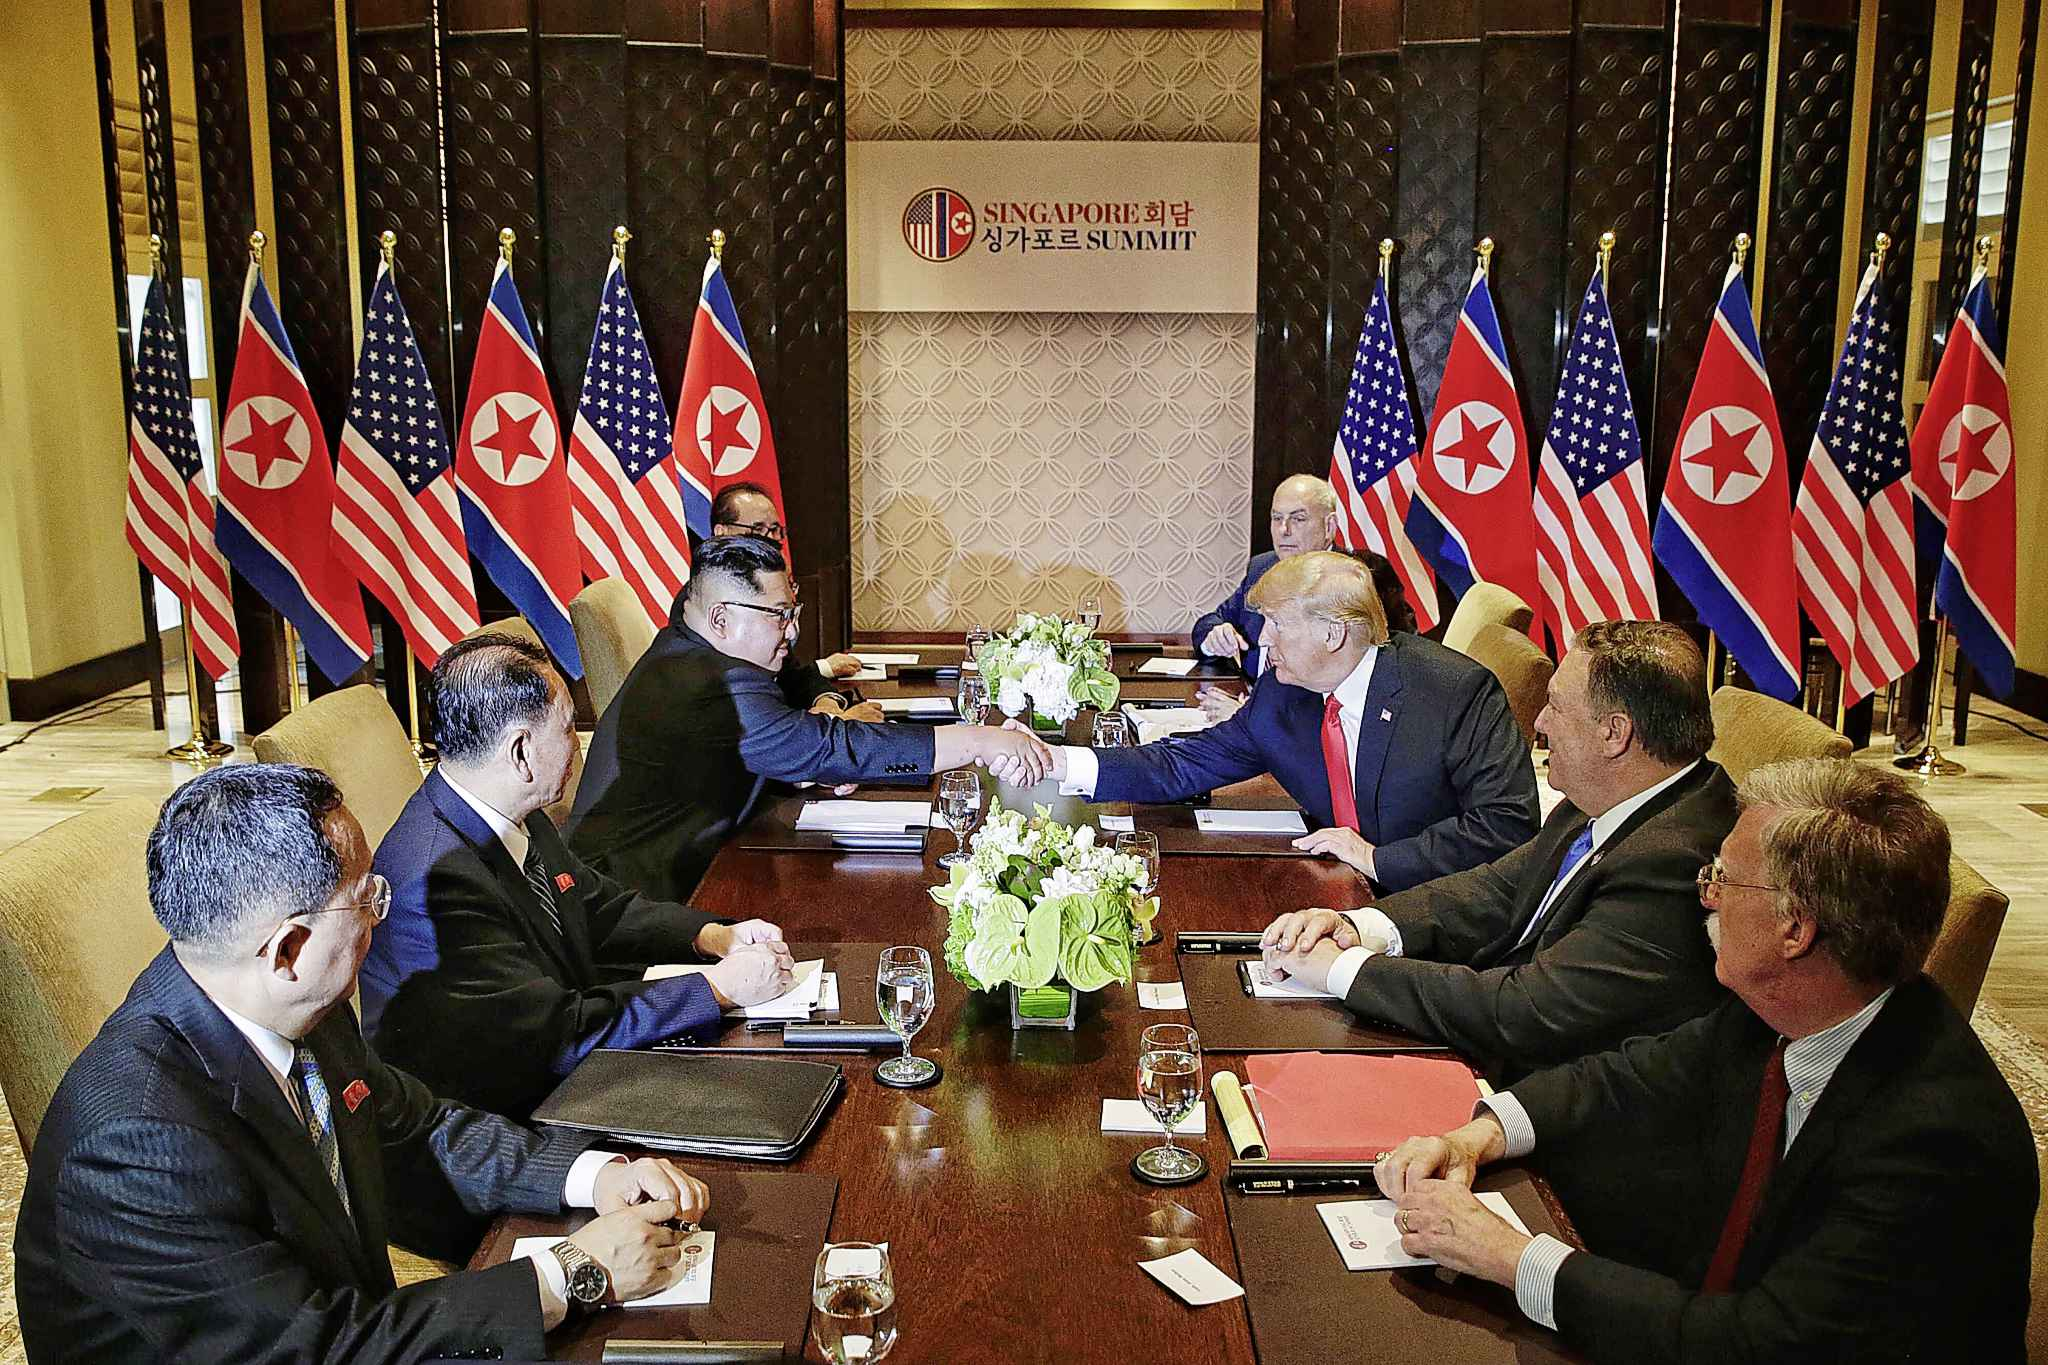 North Korea's Kim Jong Un, third from left, shakes hands with U.S. President Donald Trump, third from right, in Singapore. (Kevin Lim/The Straits Times/Zuma Press/TNS)